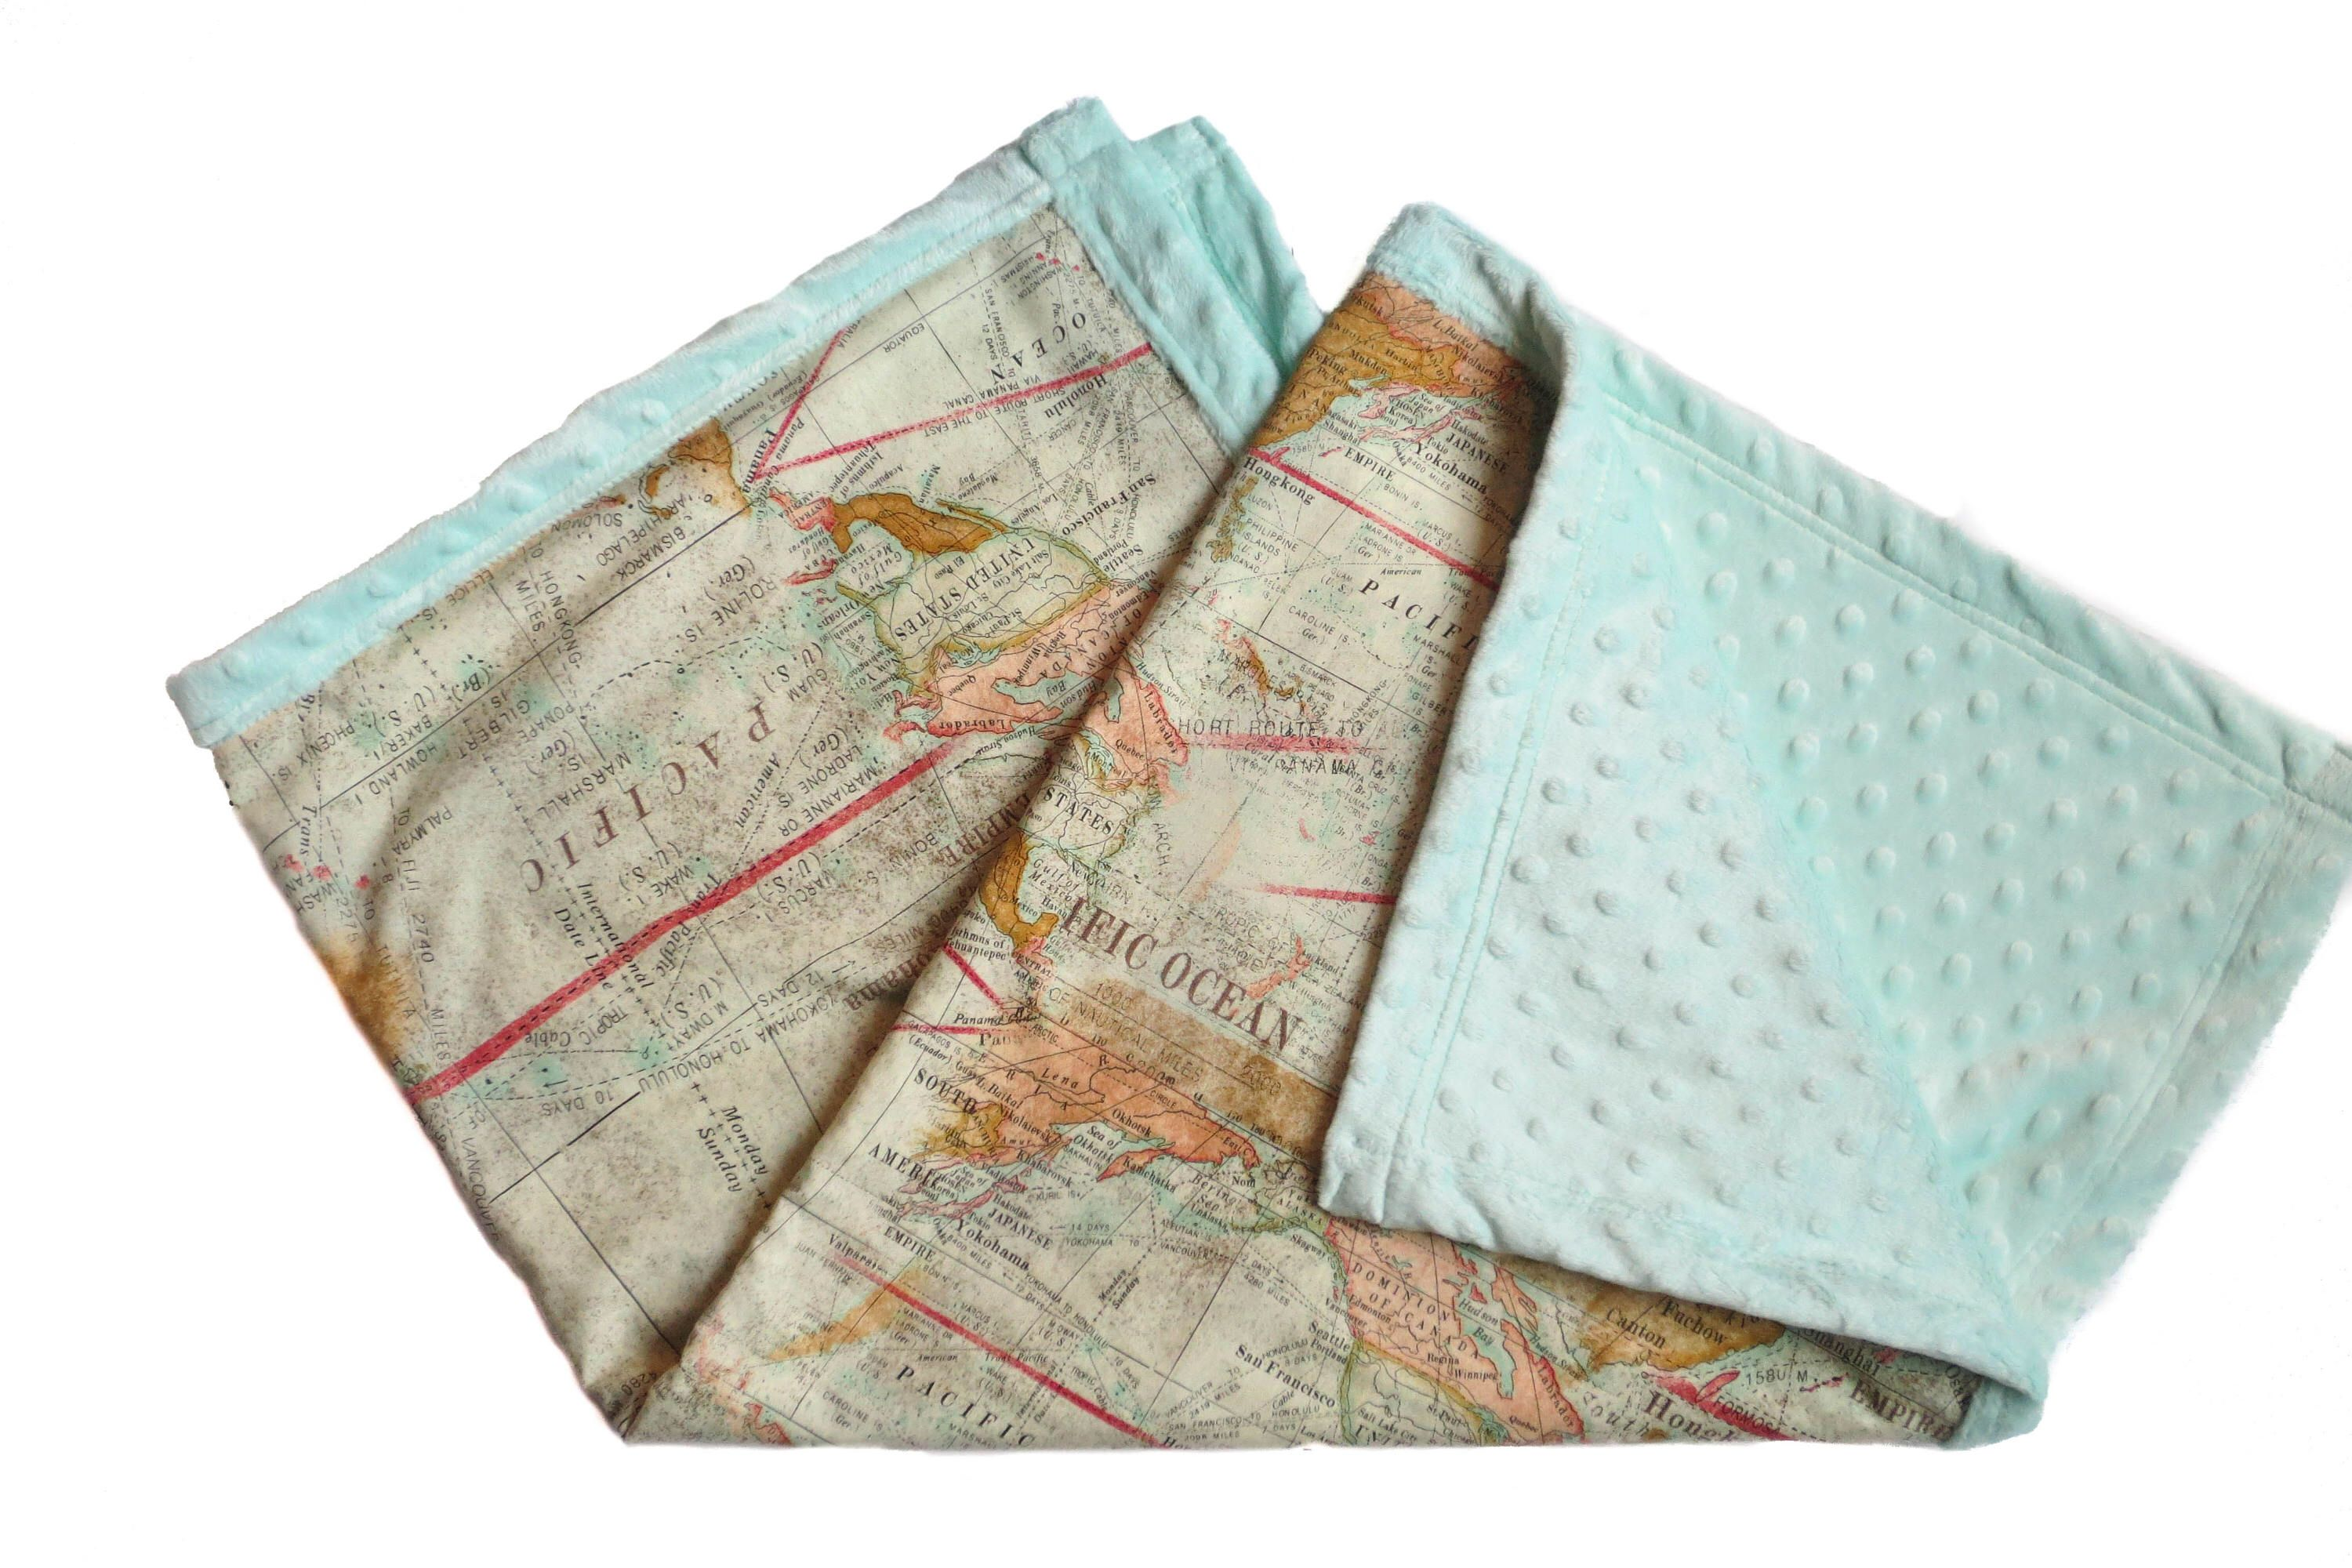 Map minky baby blanket gender neutral baby world map blanket map minky baby blanket gender neutral baby world map blanket travel theme blanket expedition blanket boy blanket girl blanket unisex gumiabroncs Gallery